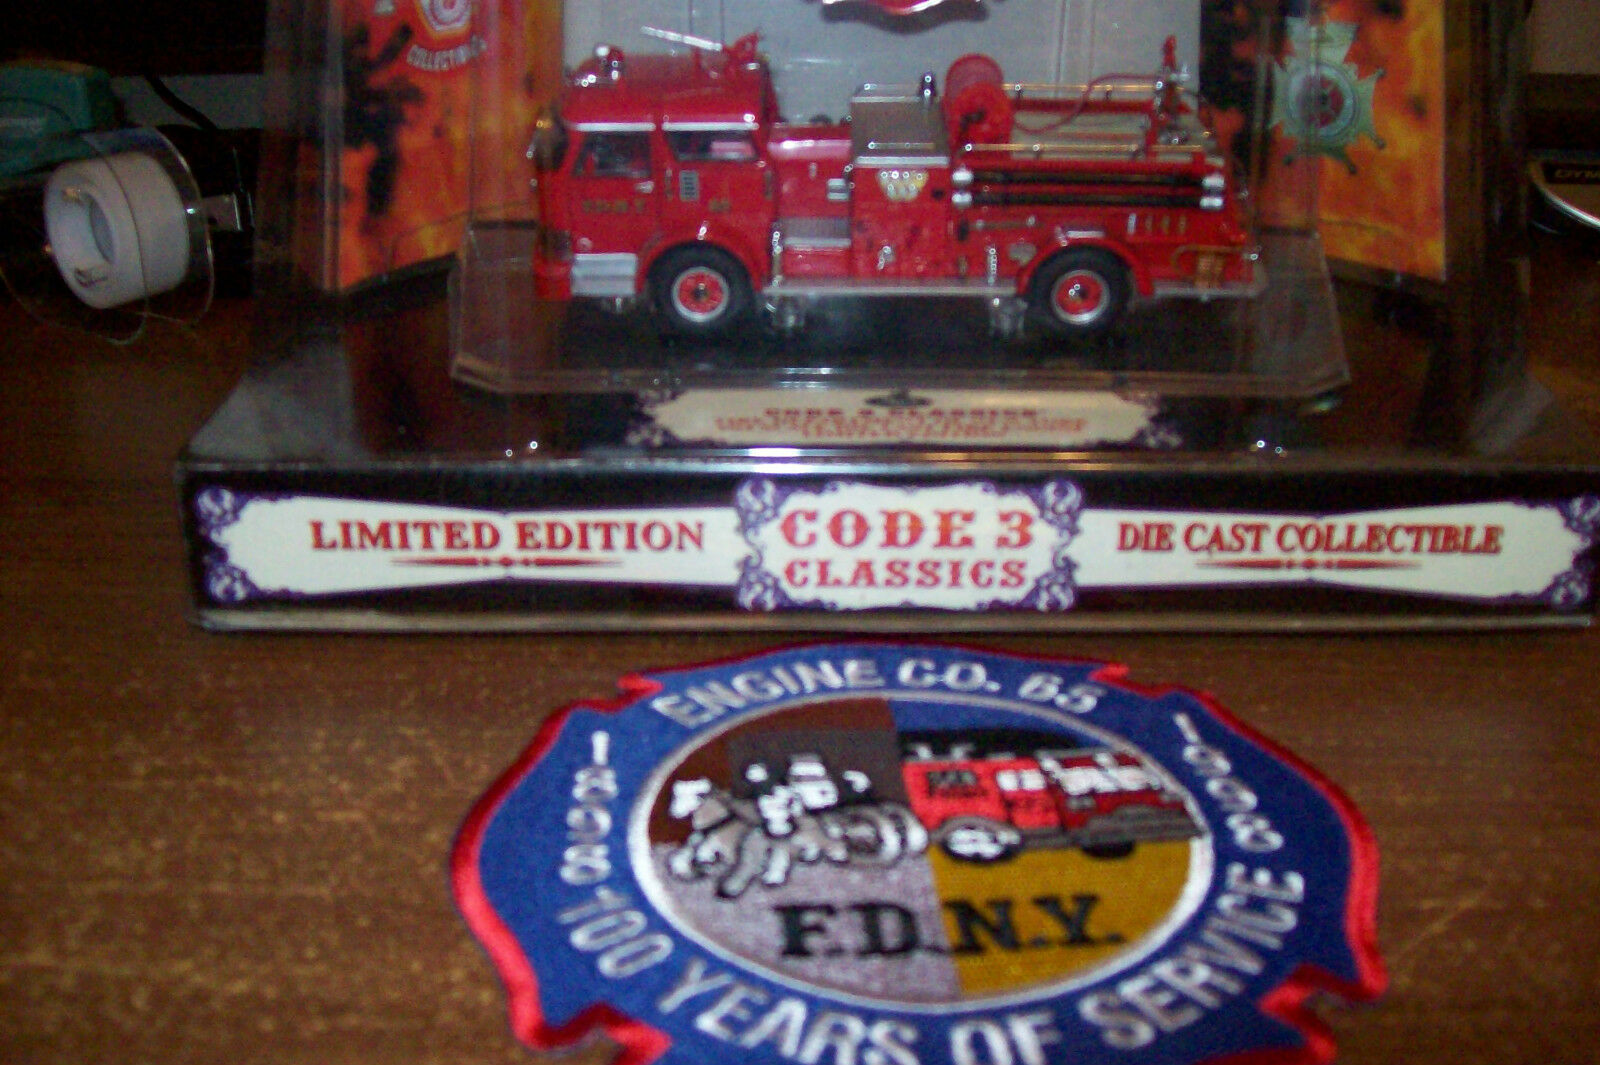 Code 3 Classic -  FDNY FDNY FDNY Fire - Engine-65, New York City + free fire patch d0c47f